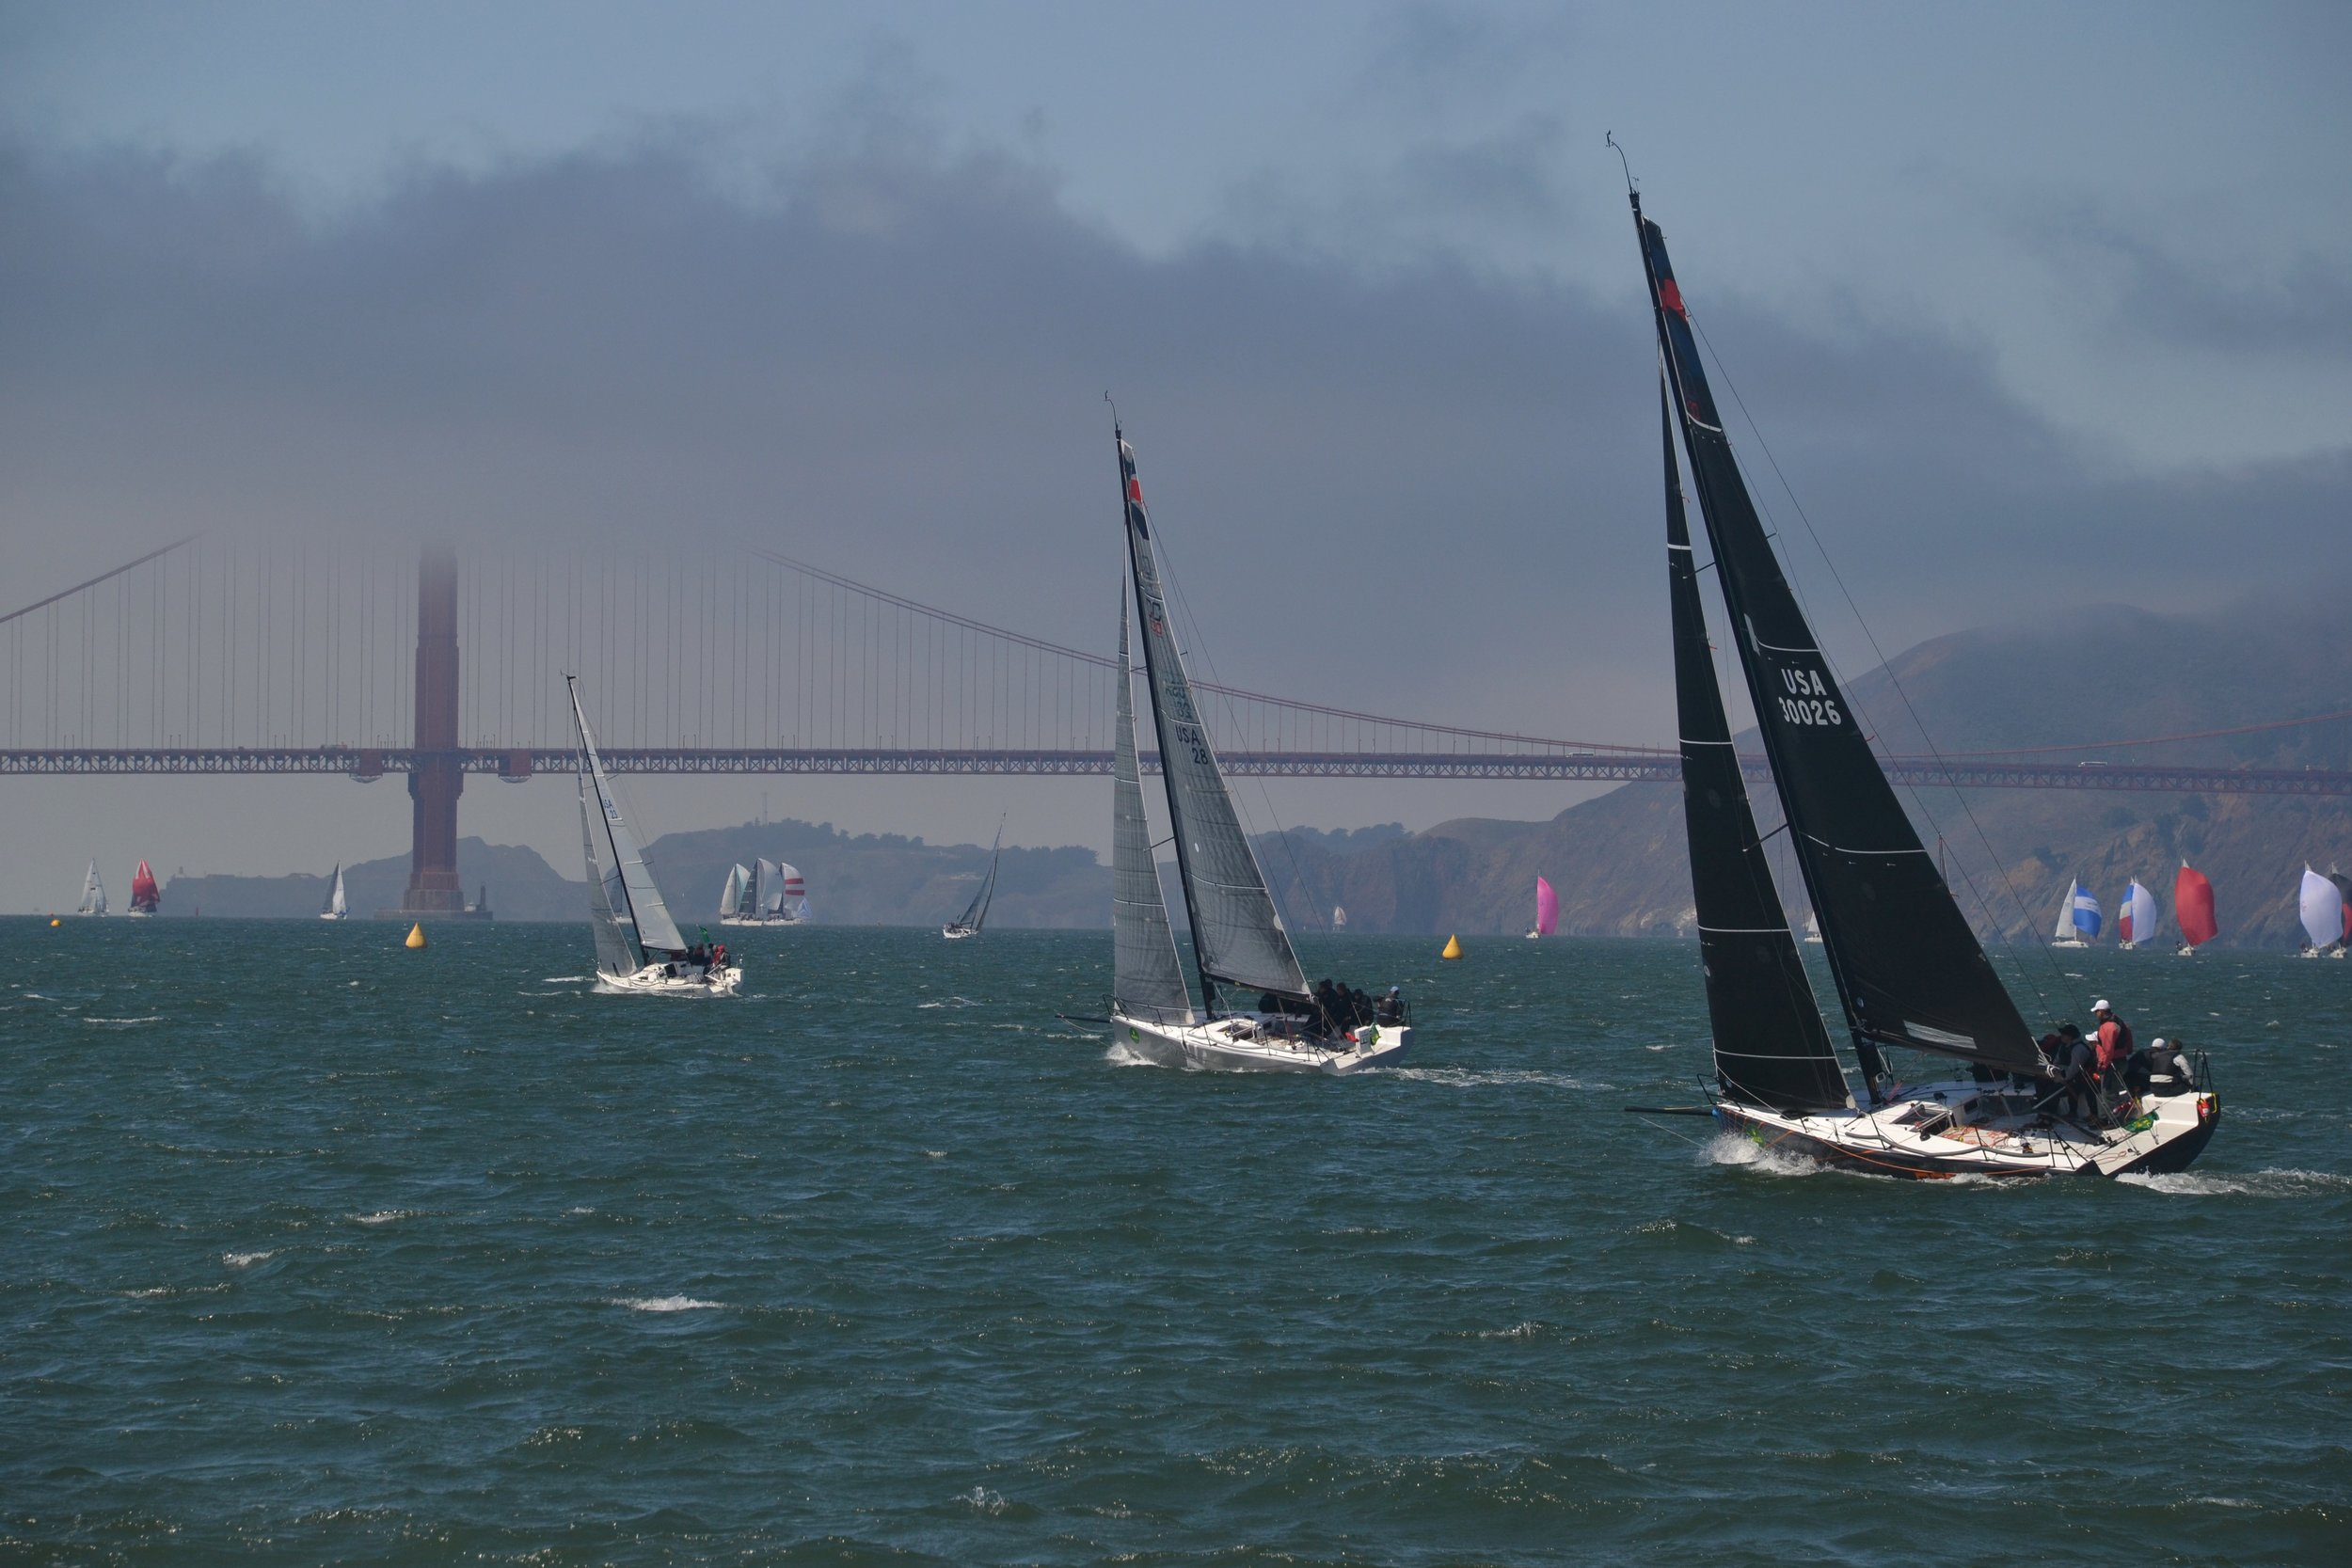 Boat racing beneath the Golden Gate bridge.